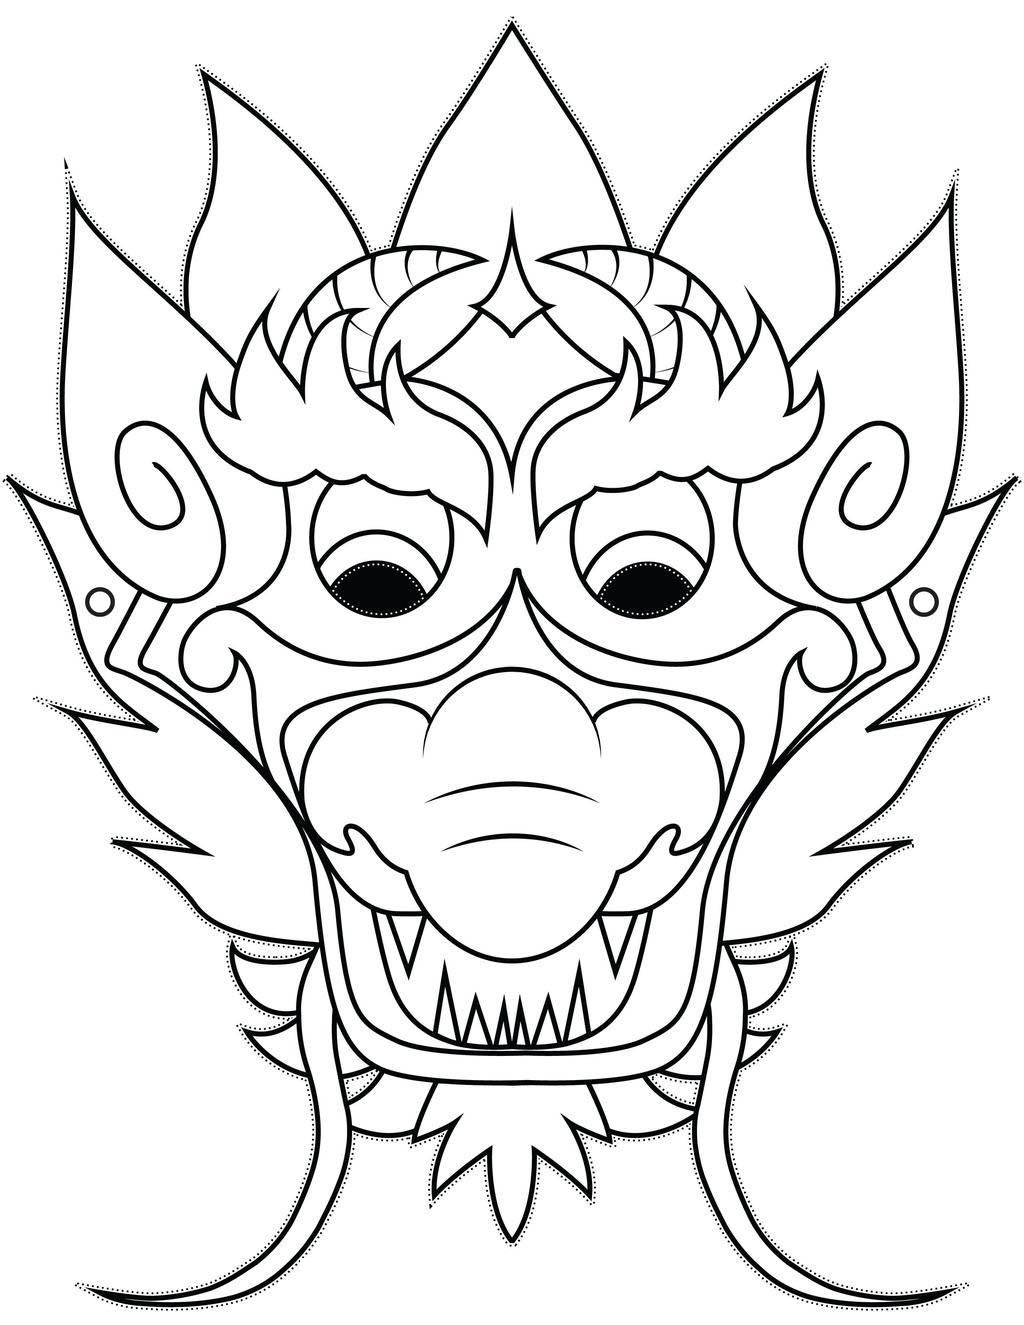 Rooster Coloring Page Year Of The Rooster Coloring Pages Blank Masks Fan Art Get